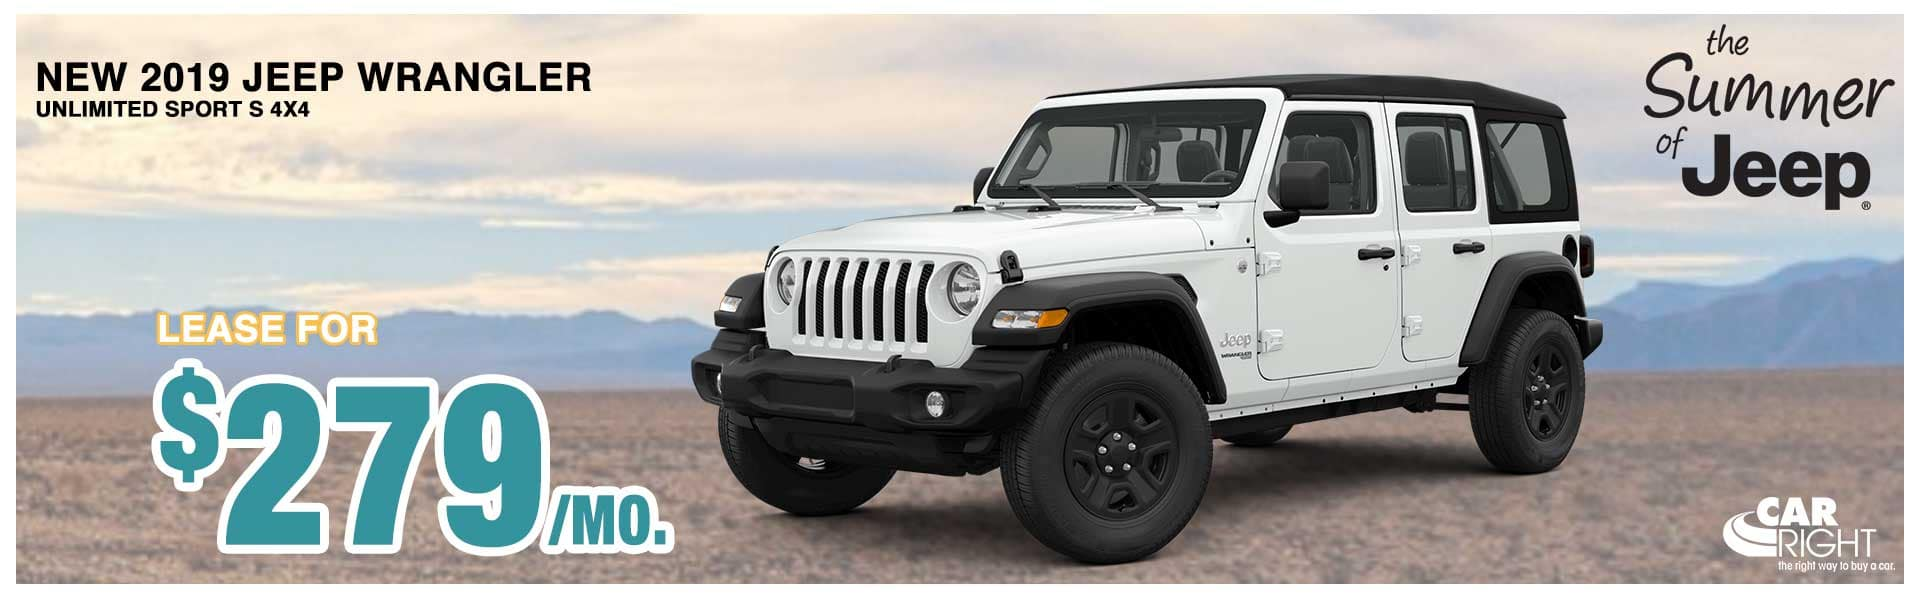 hight resolution of diehl auto carright chrysler dodge jeep ram lease special financing summer clearance event summer of jeep